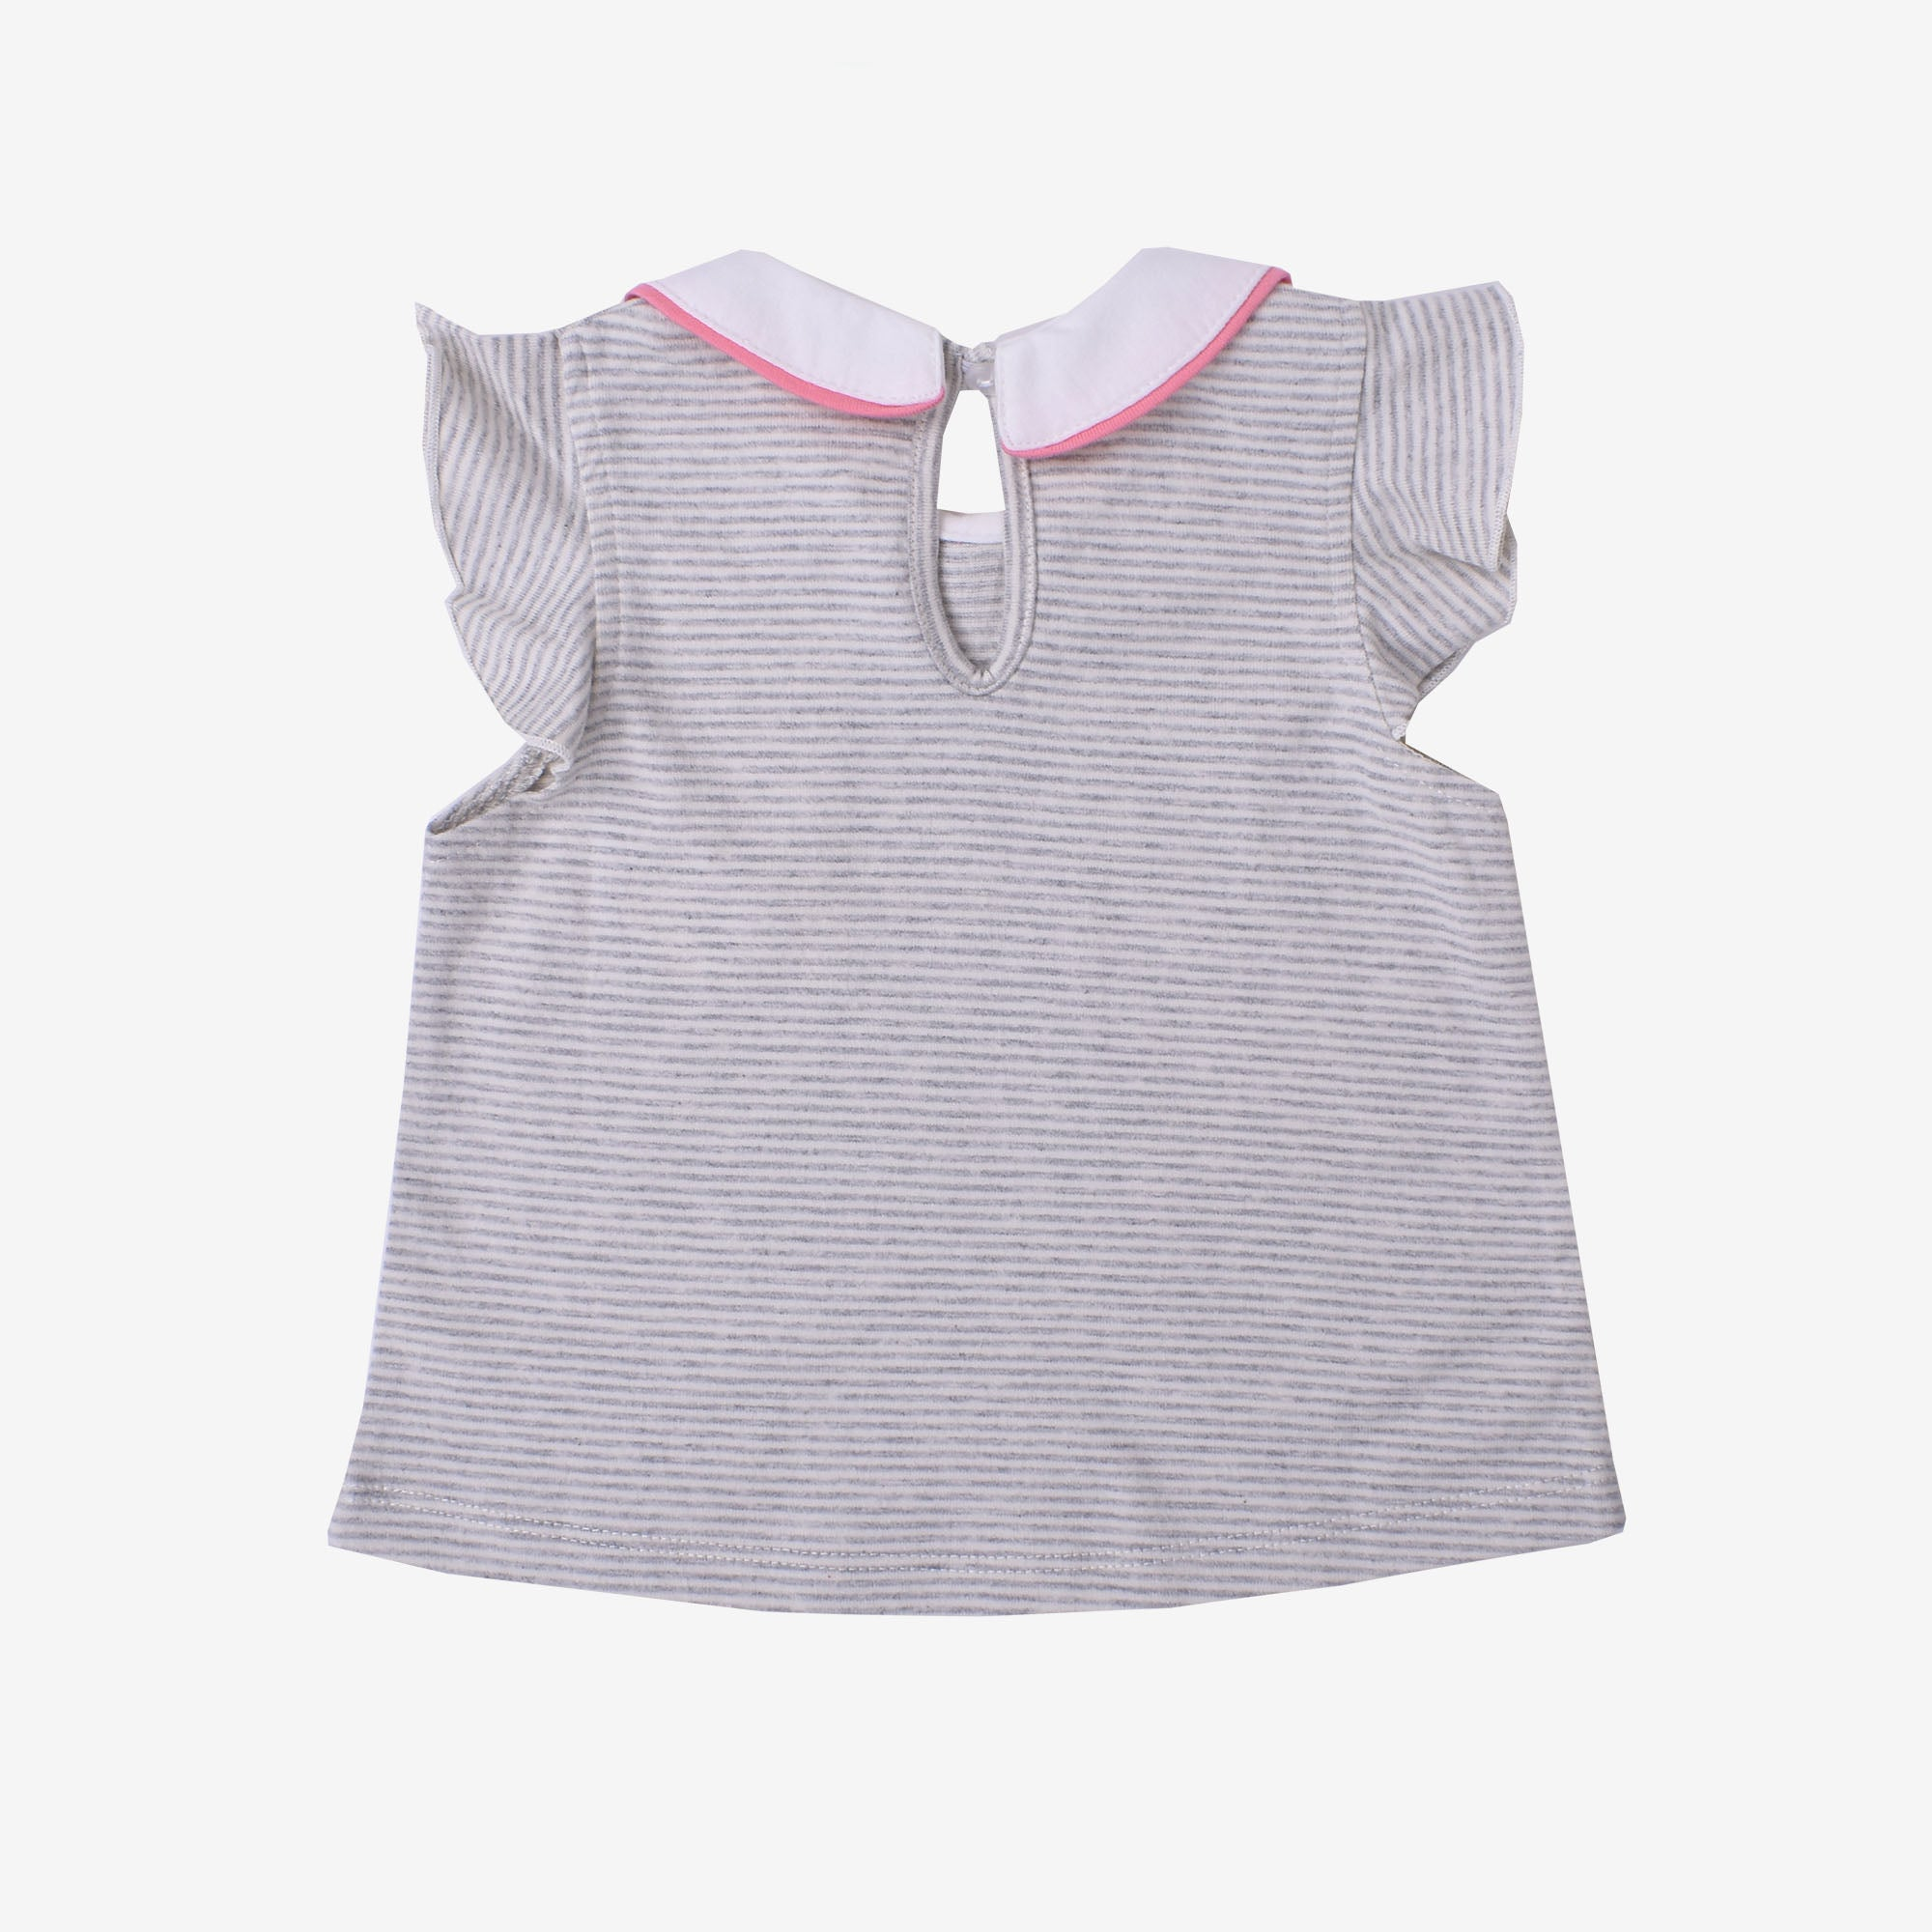 Nutracker Petar Pan Collar Short Sleeve Tee